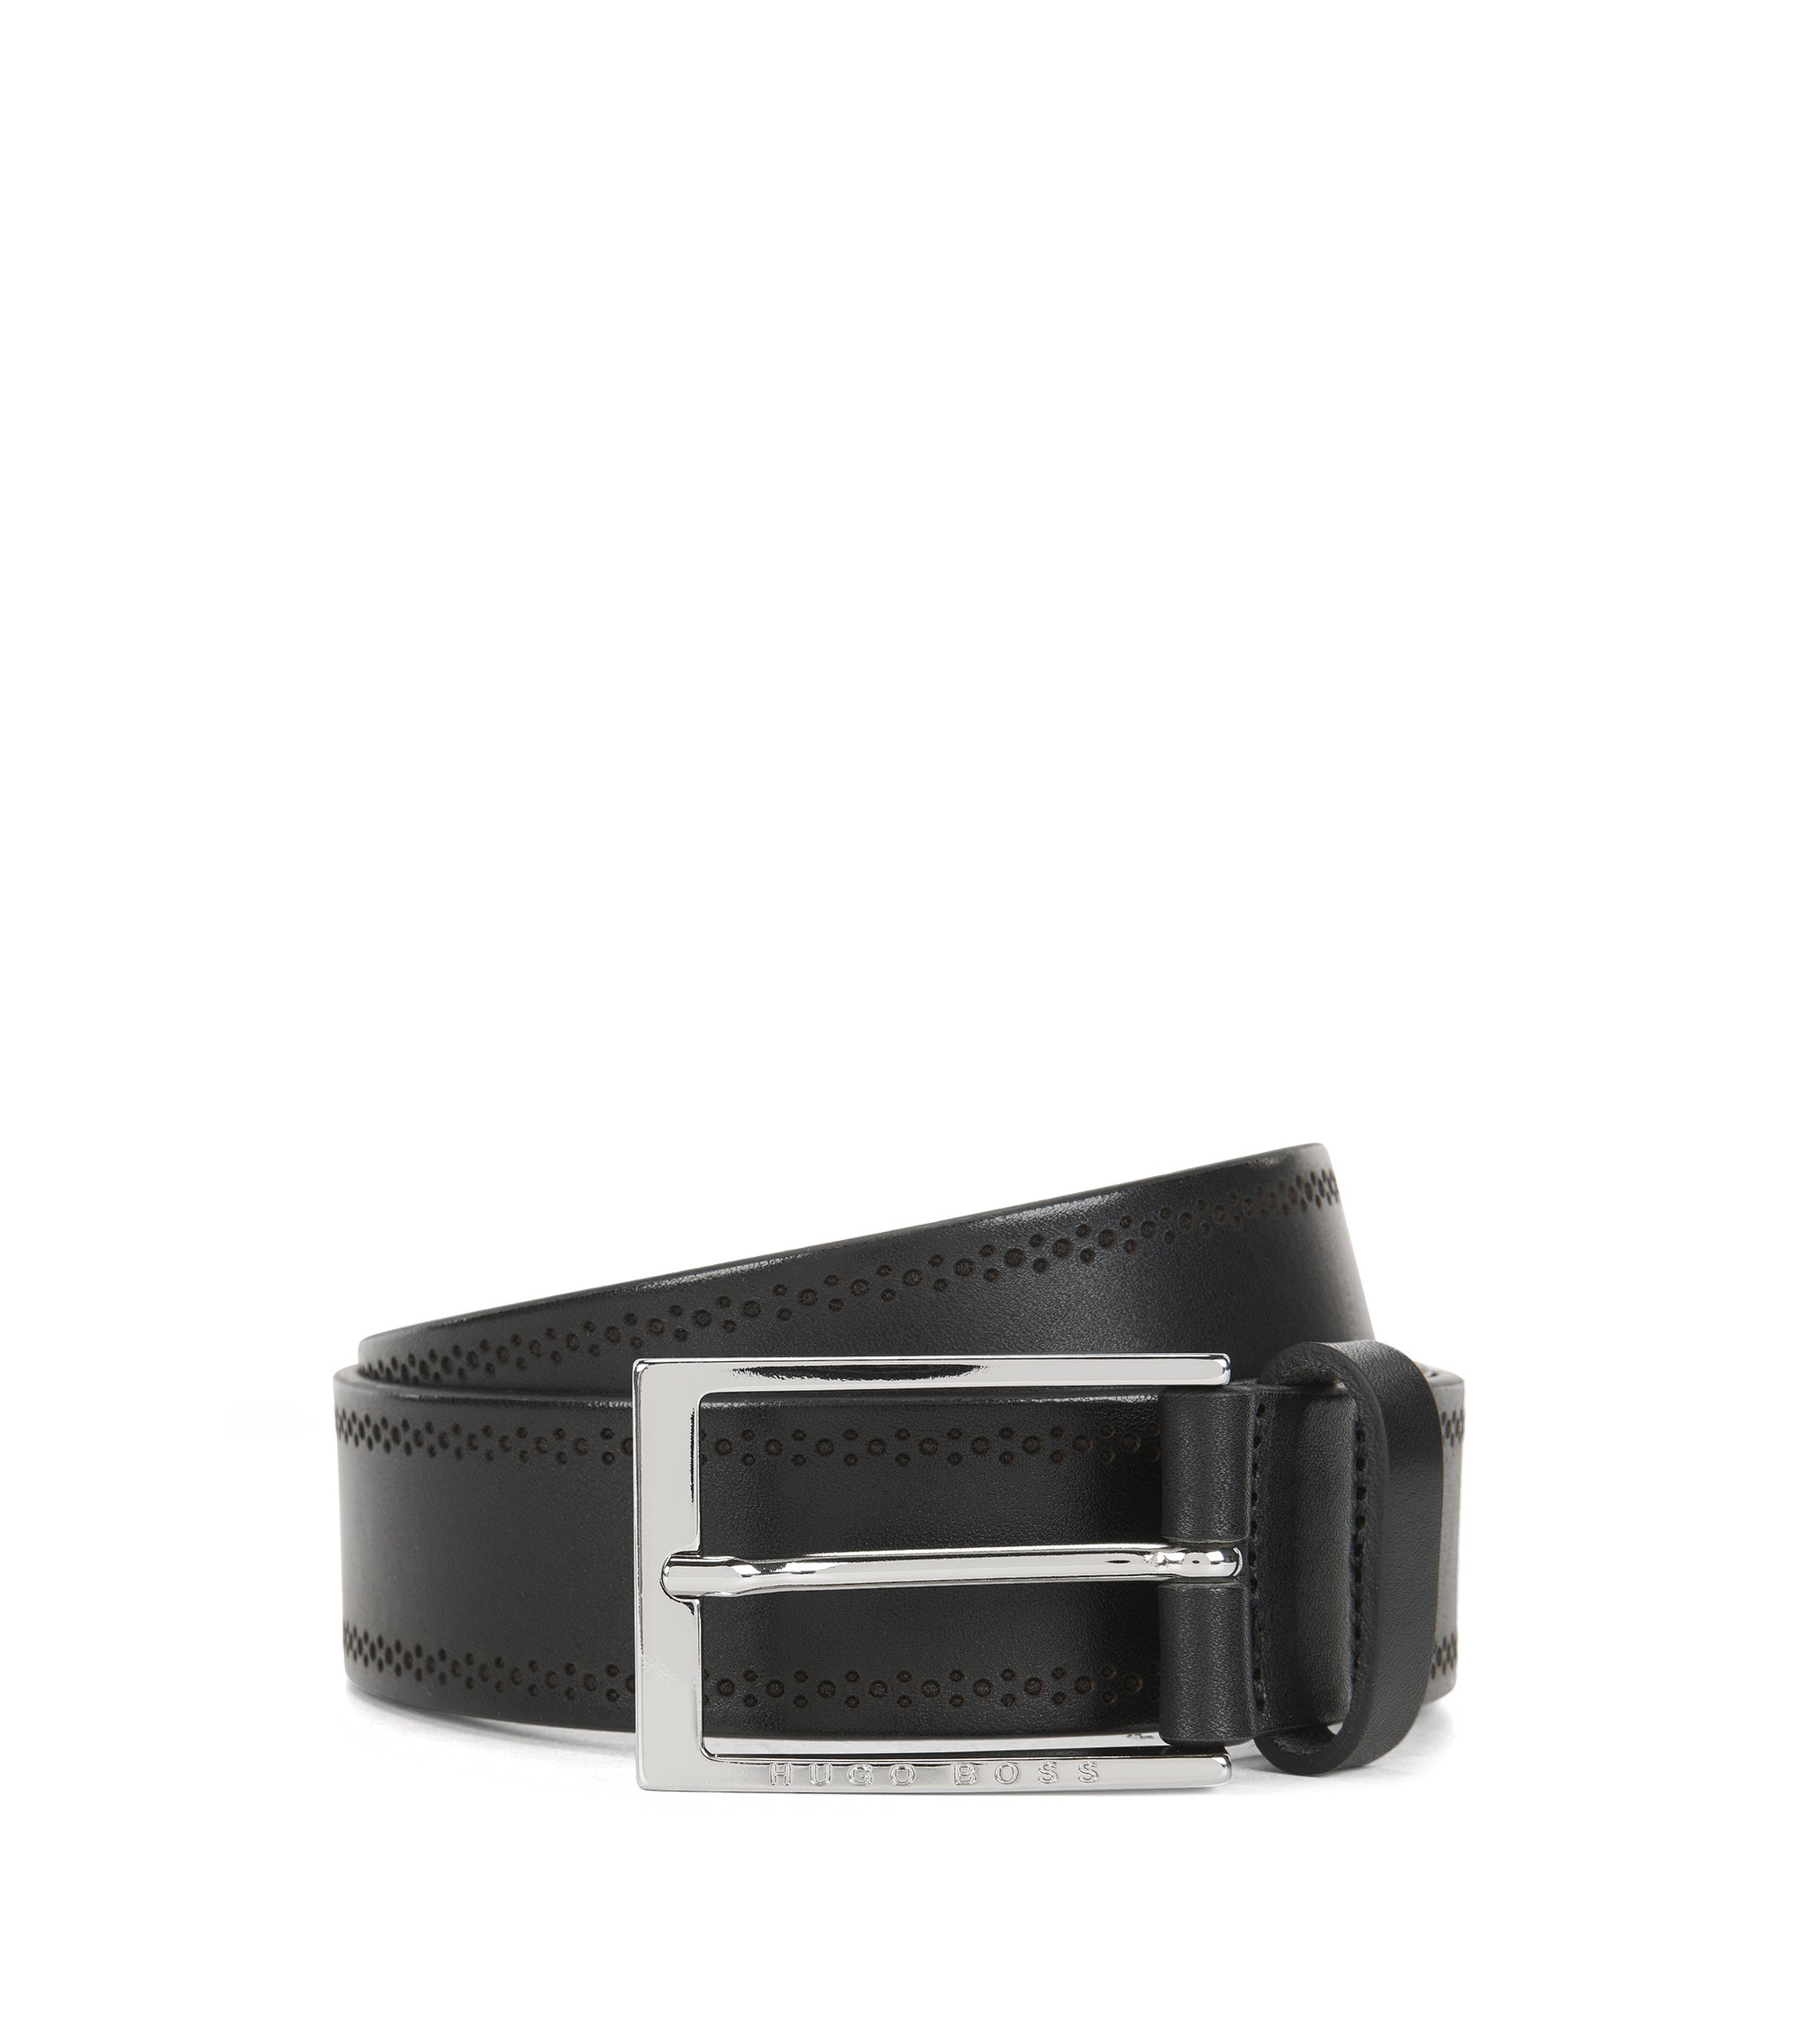 Brogue Leather Belt | Cludo Sz Ltbg, Black